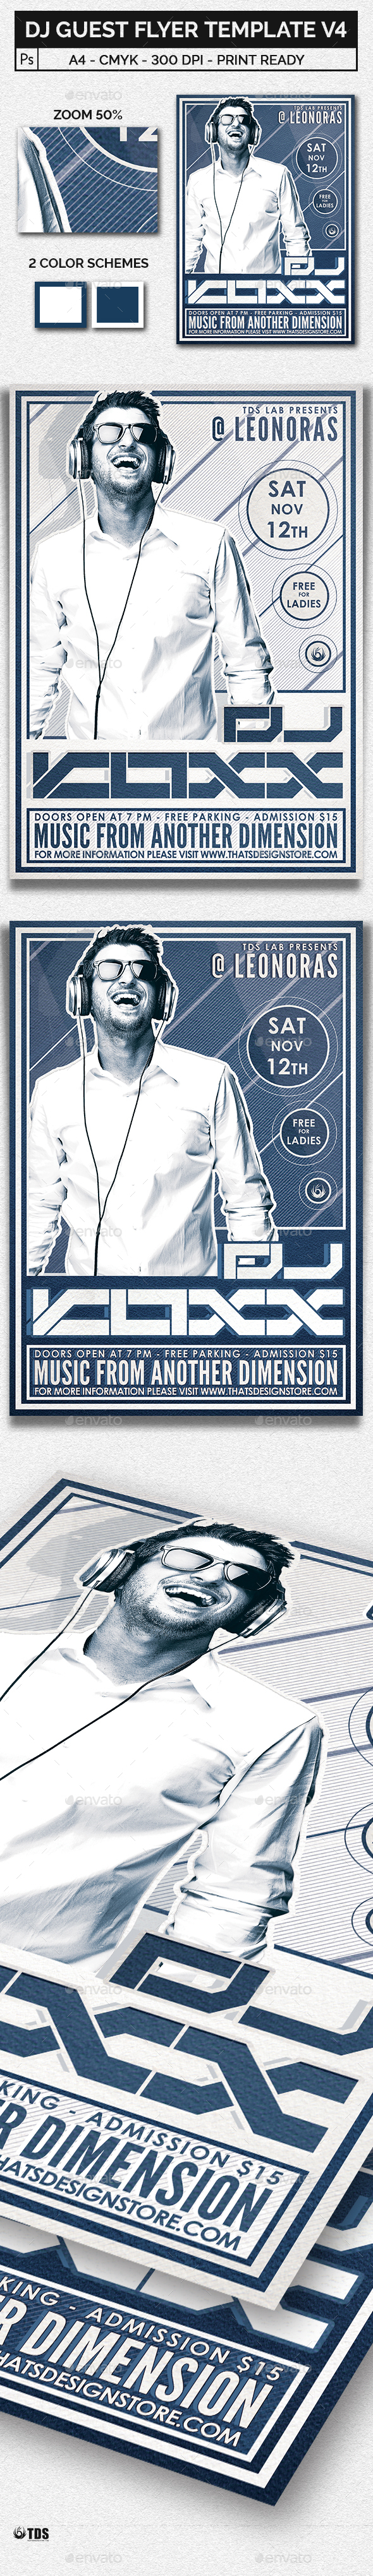 DJ Guest Flyer Template V4 - Clubs & Parties Events